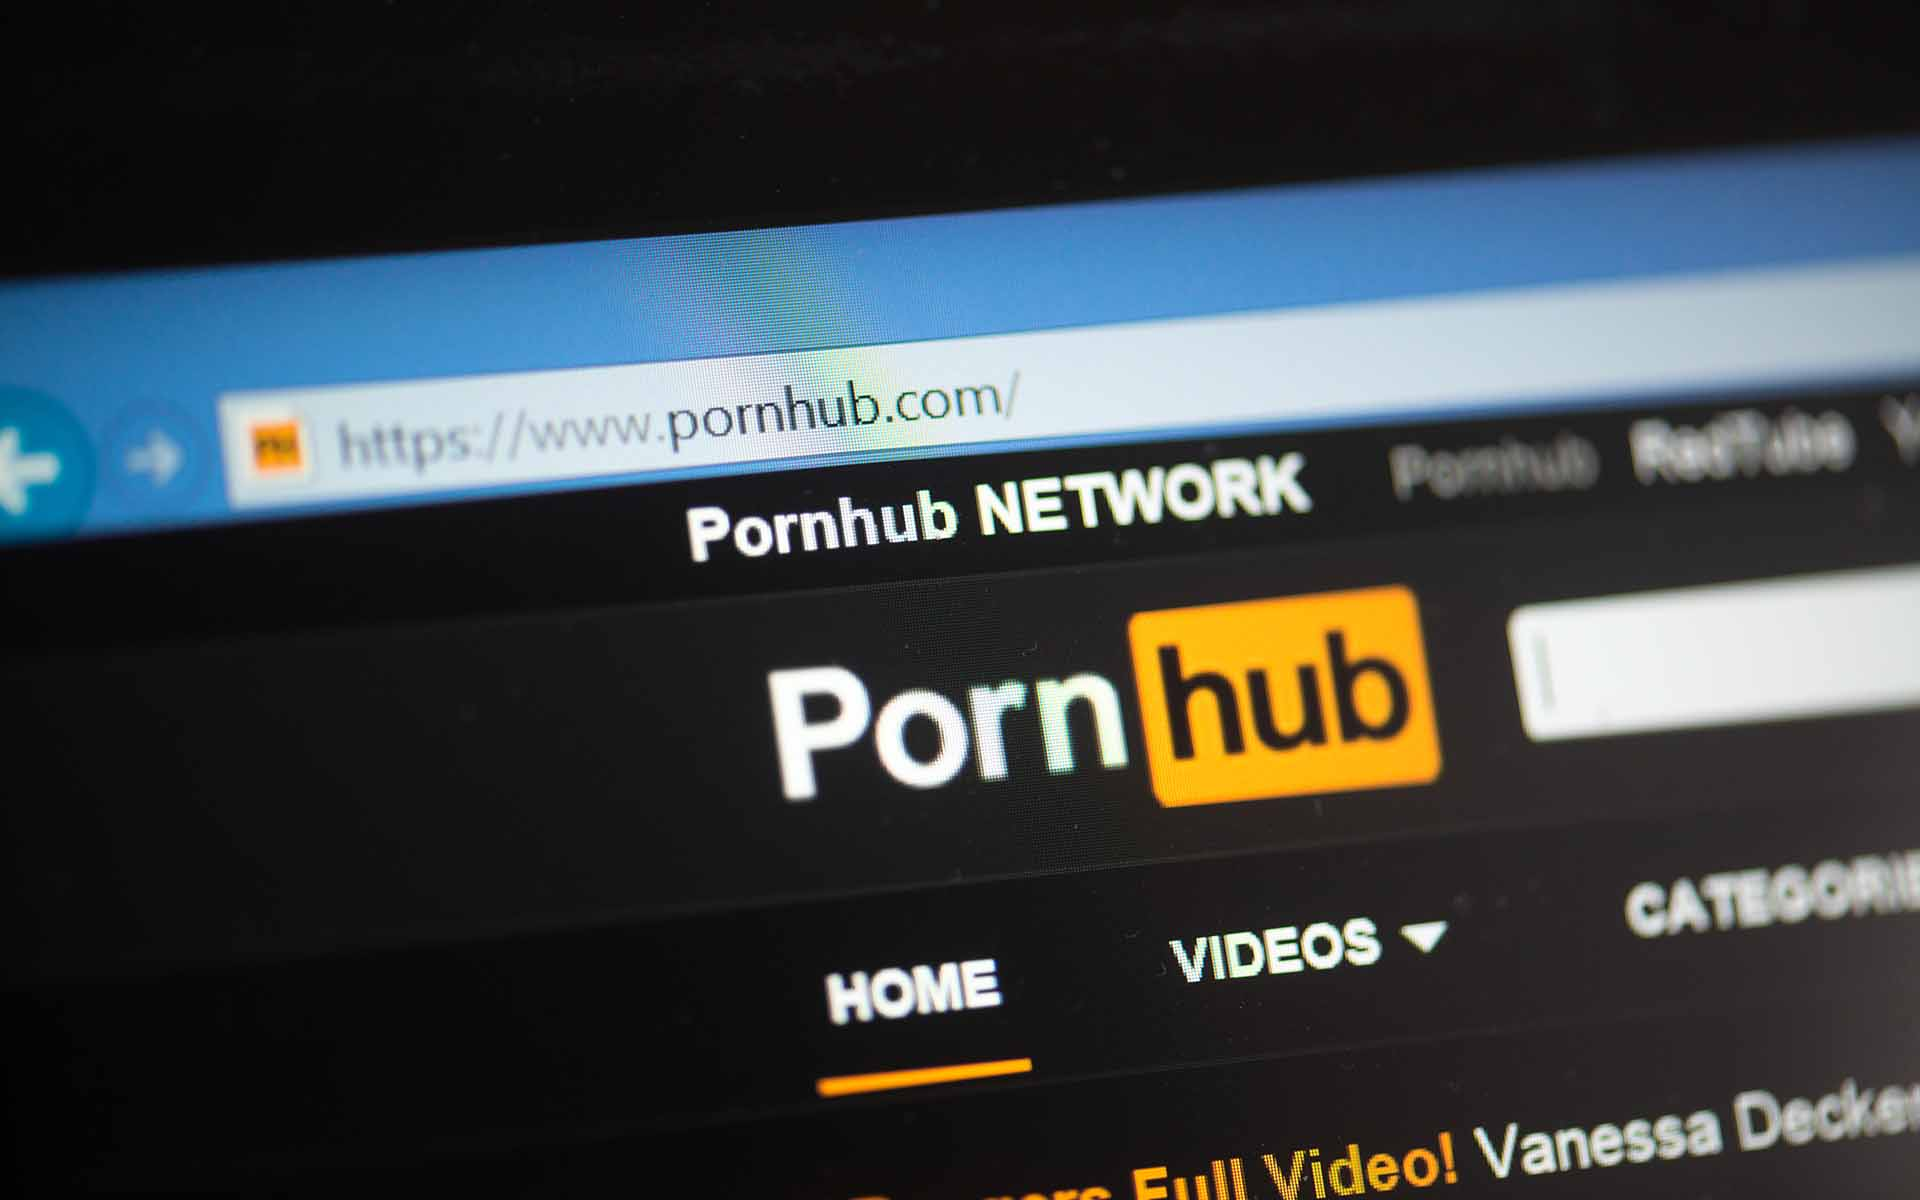 Verge (XVG) 'Penetrates' Market with Pornhub Partnership